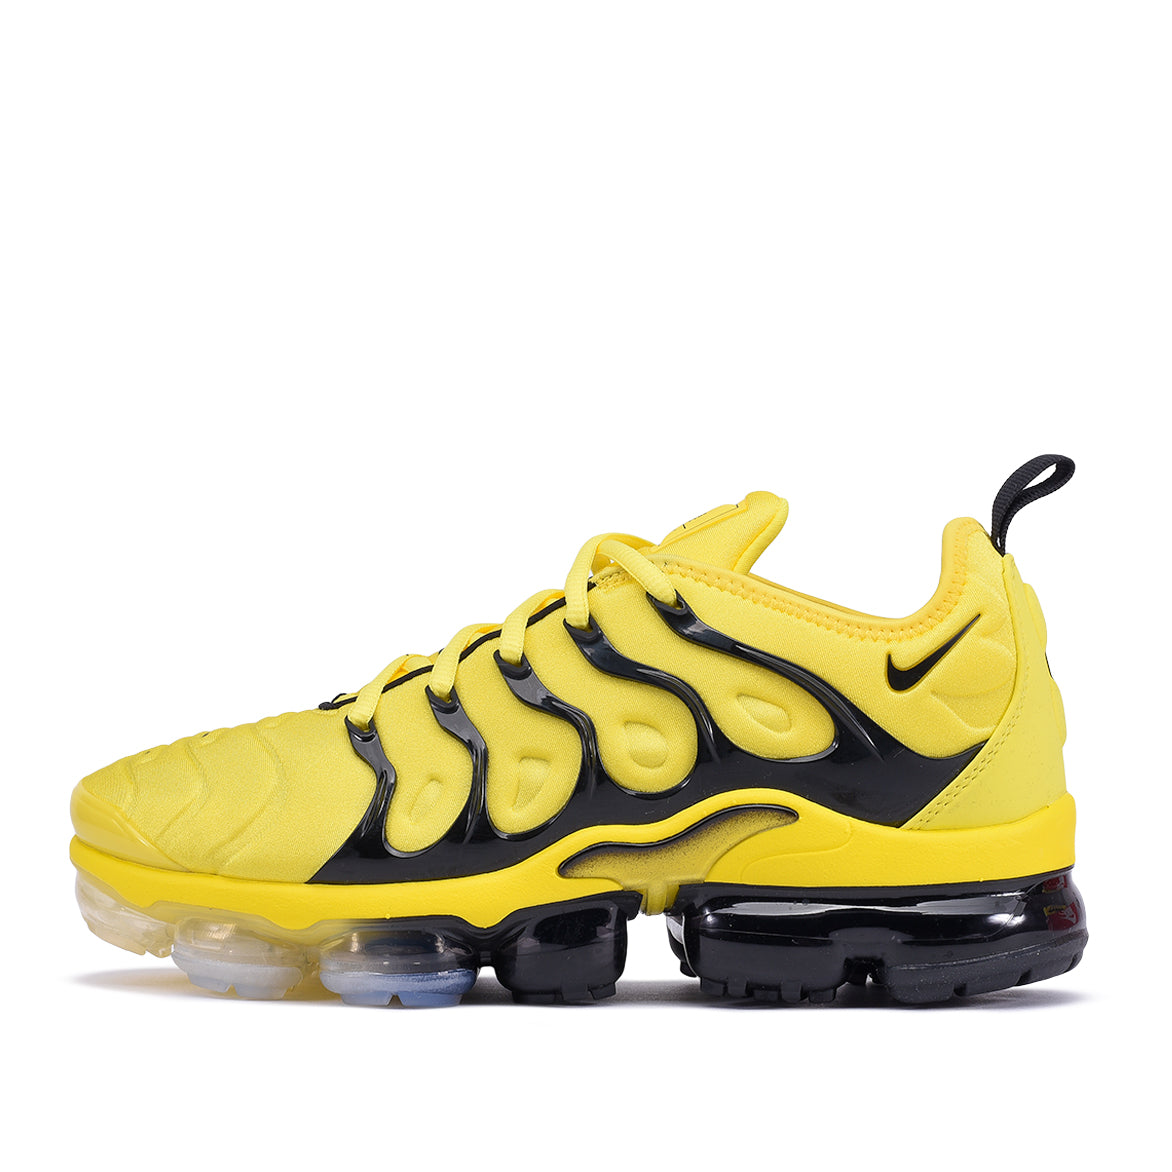 942adaa9b1 AIR VAPORMAX PLUS